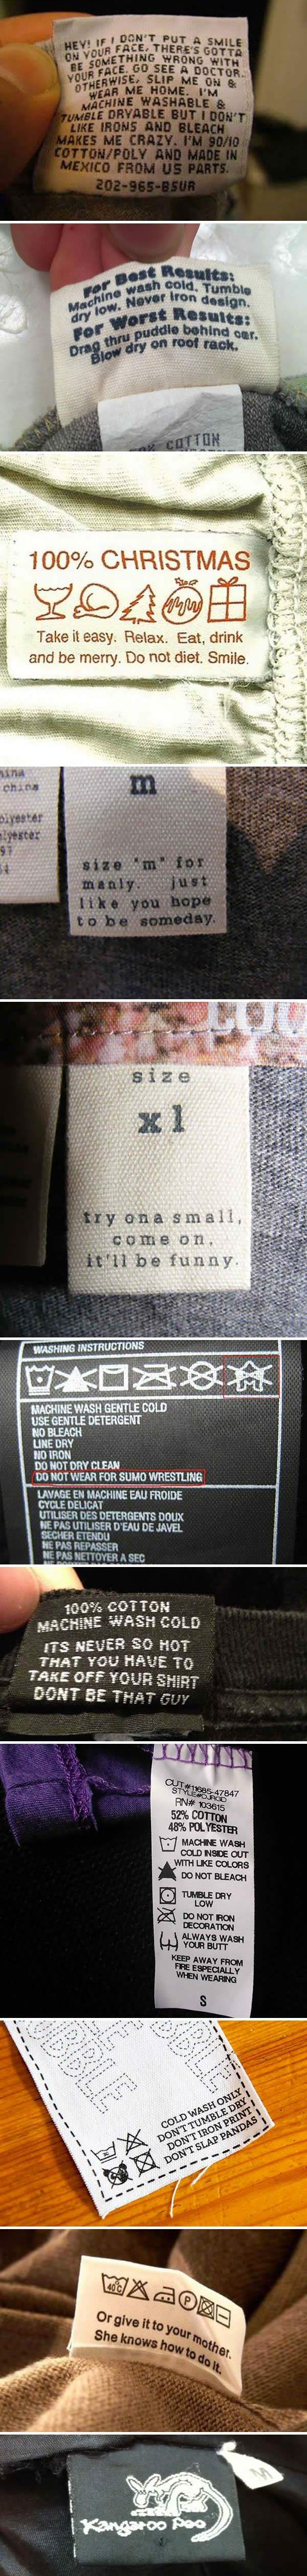 The Funniest Clothing Tags Ever